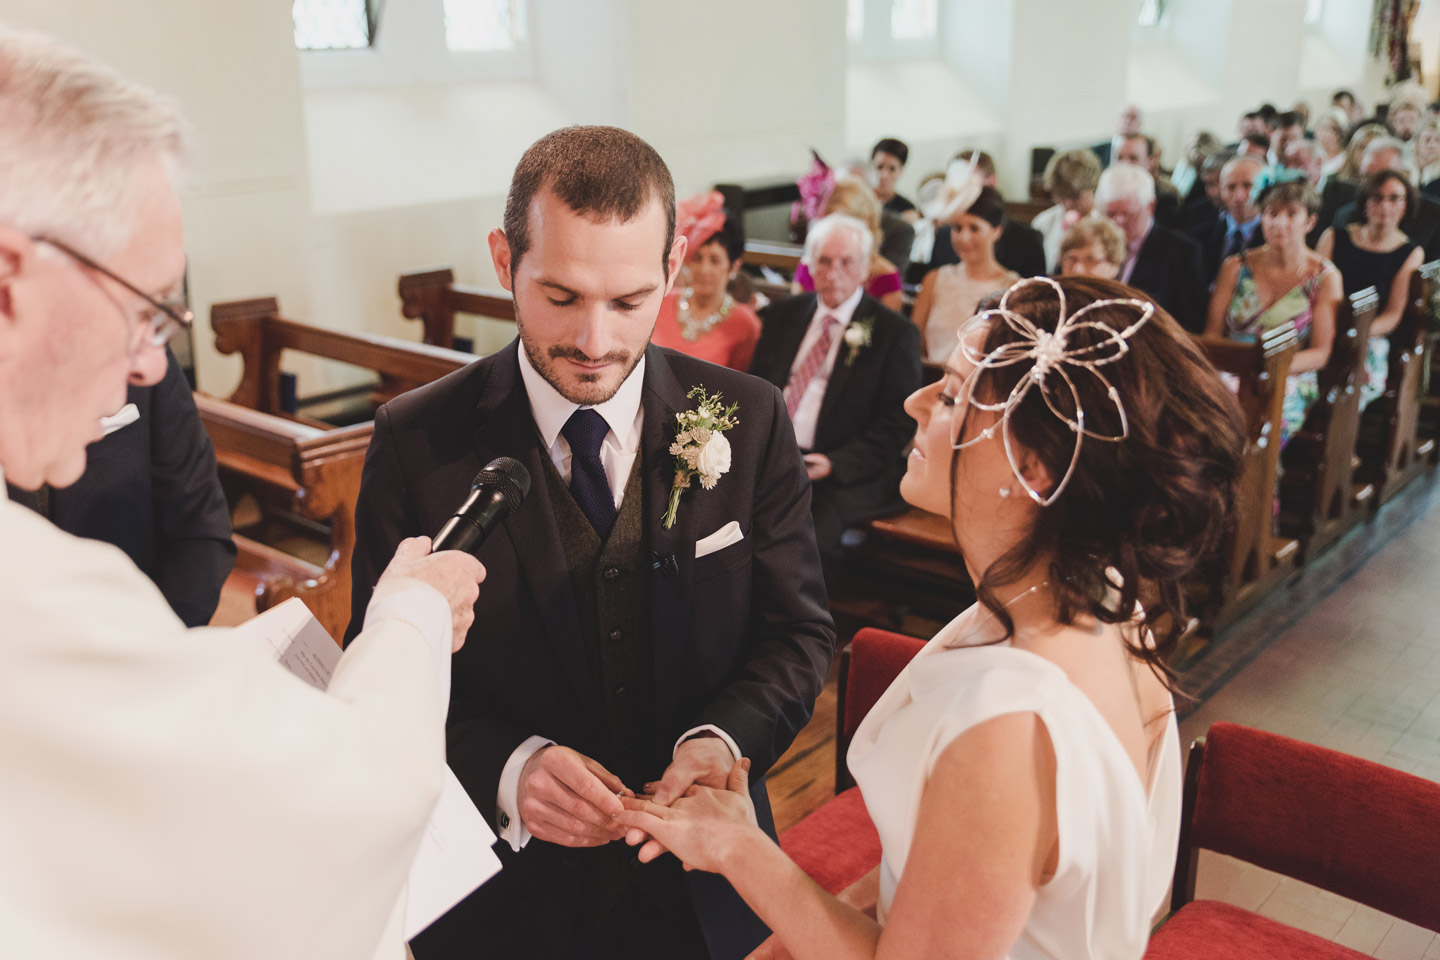 Groom putting ring on bride's finger in church. Weddings by KARA Wedding photography meath